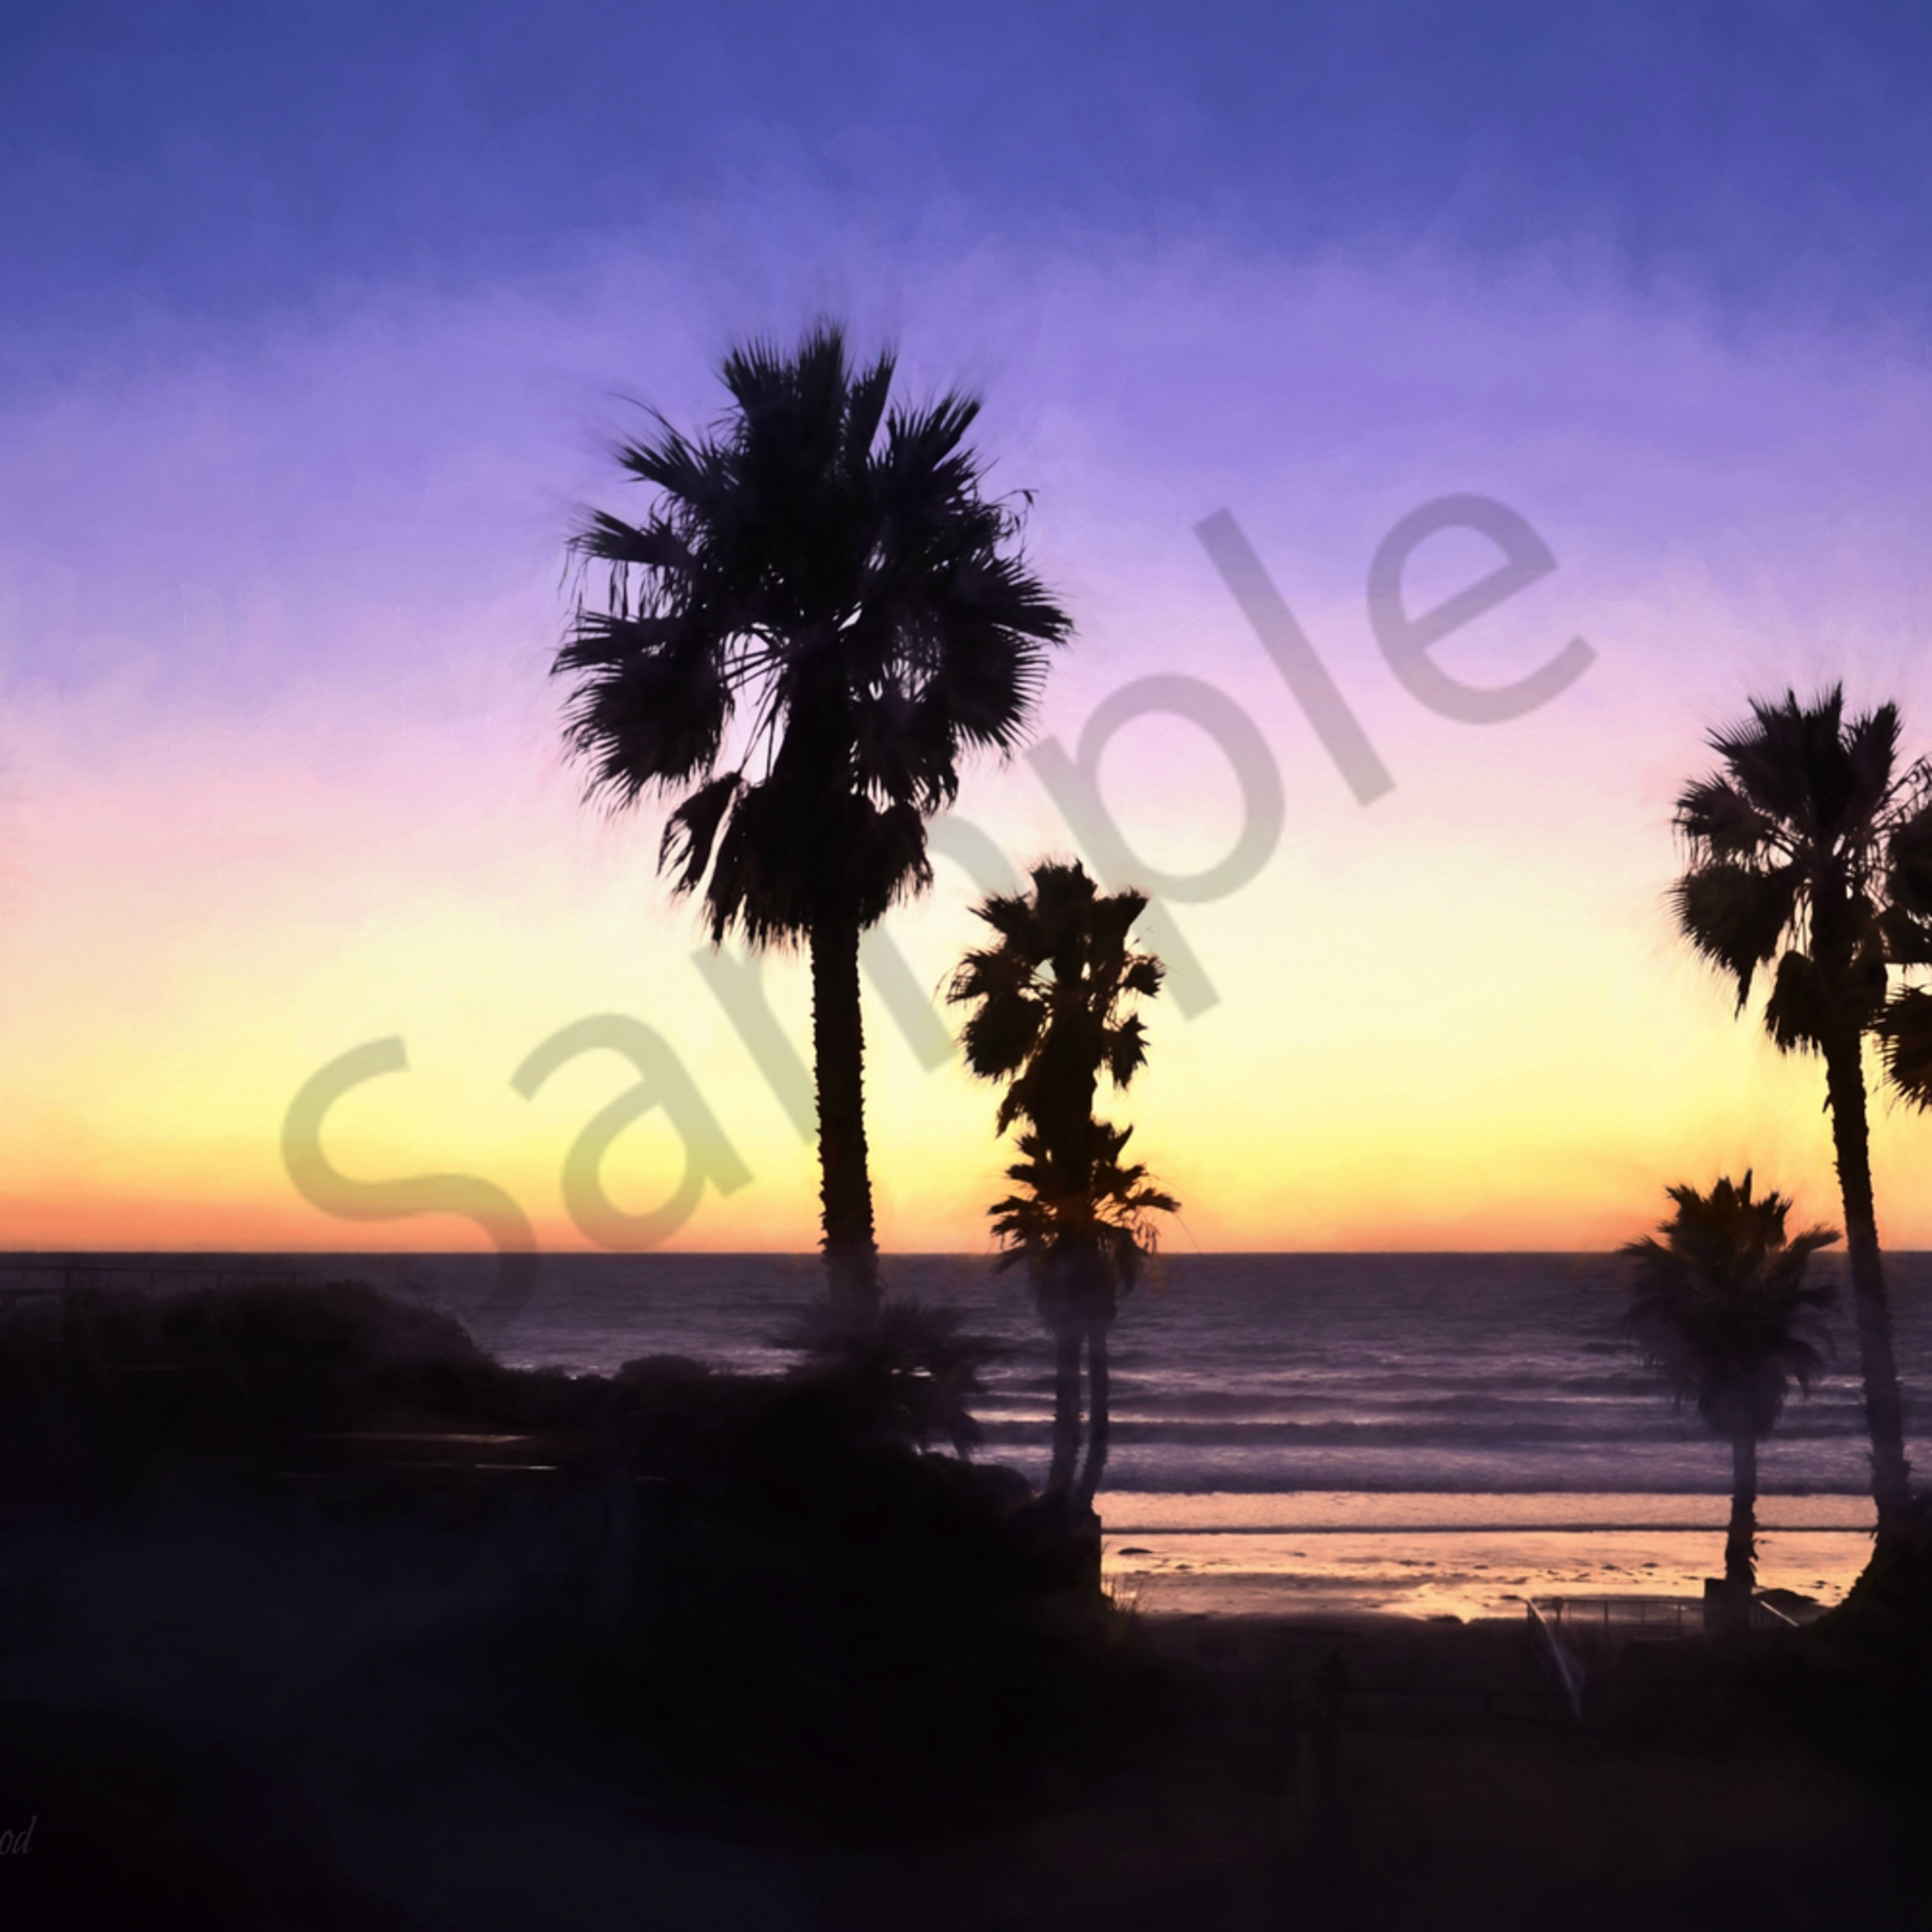 Dsc 8362 happiness at heart   solana beach sunset   topaz watercolor 2015 tag r krcjpg